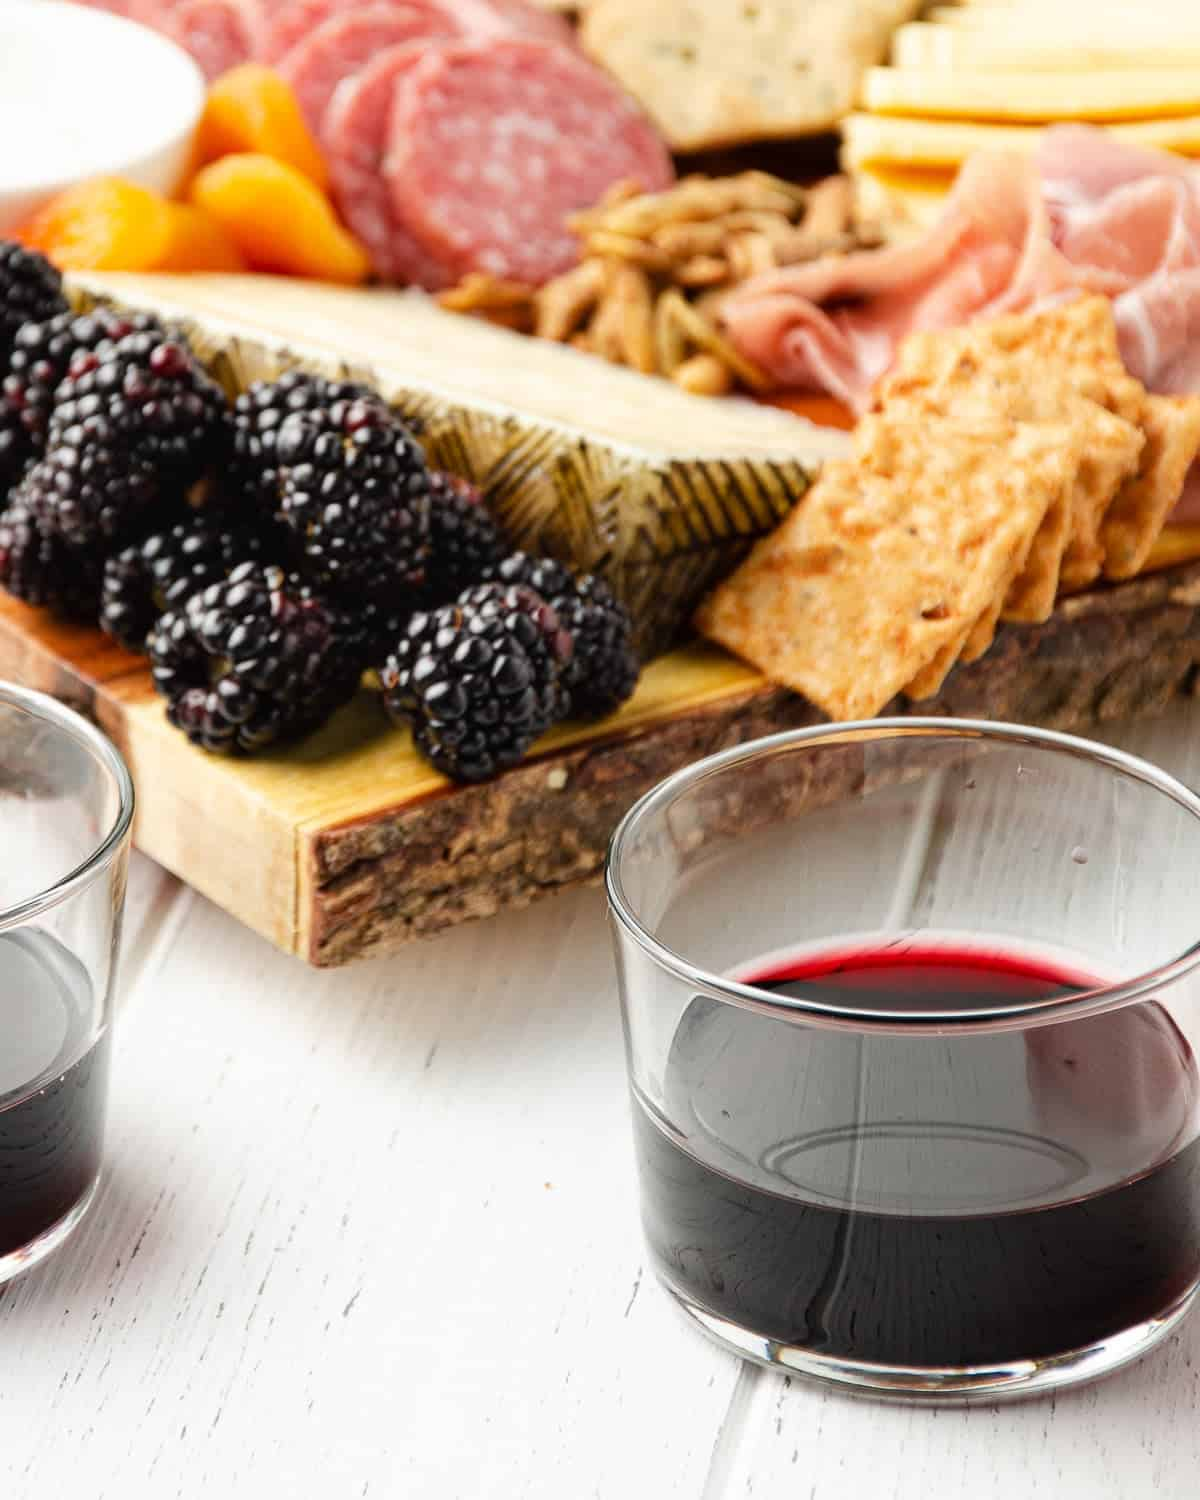 a close up image of two red wine glasses in front of a cheese board featuring manchego, blackberries, crackers and cured meats behind